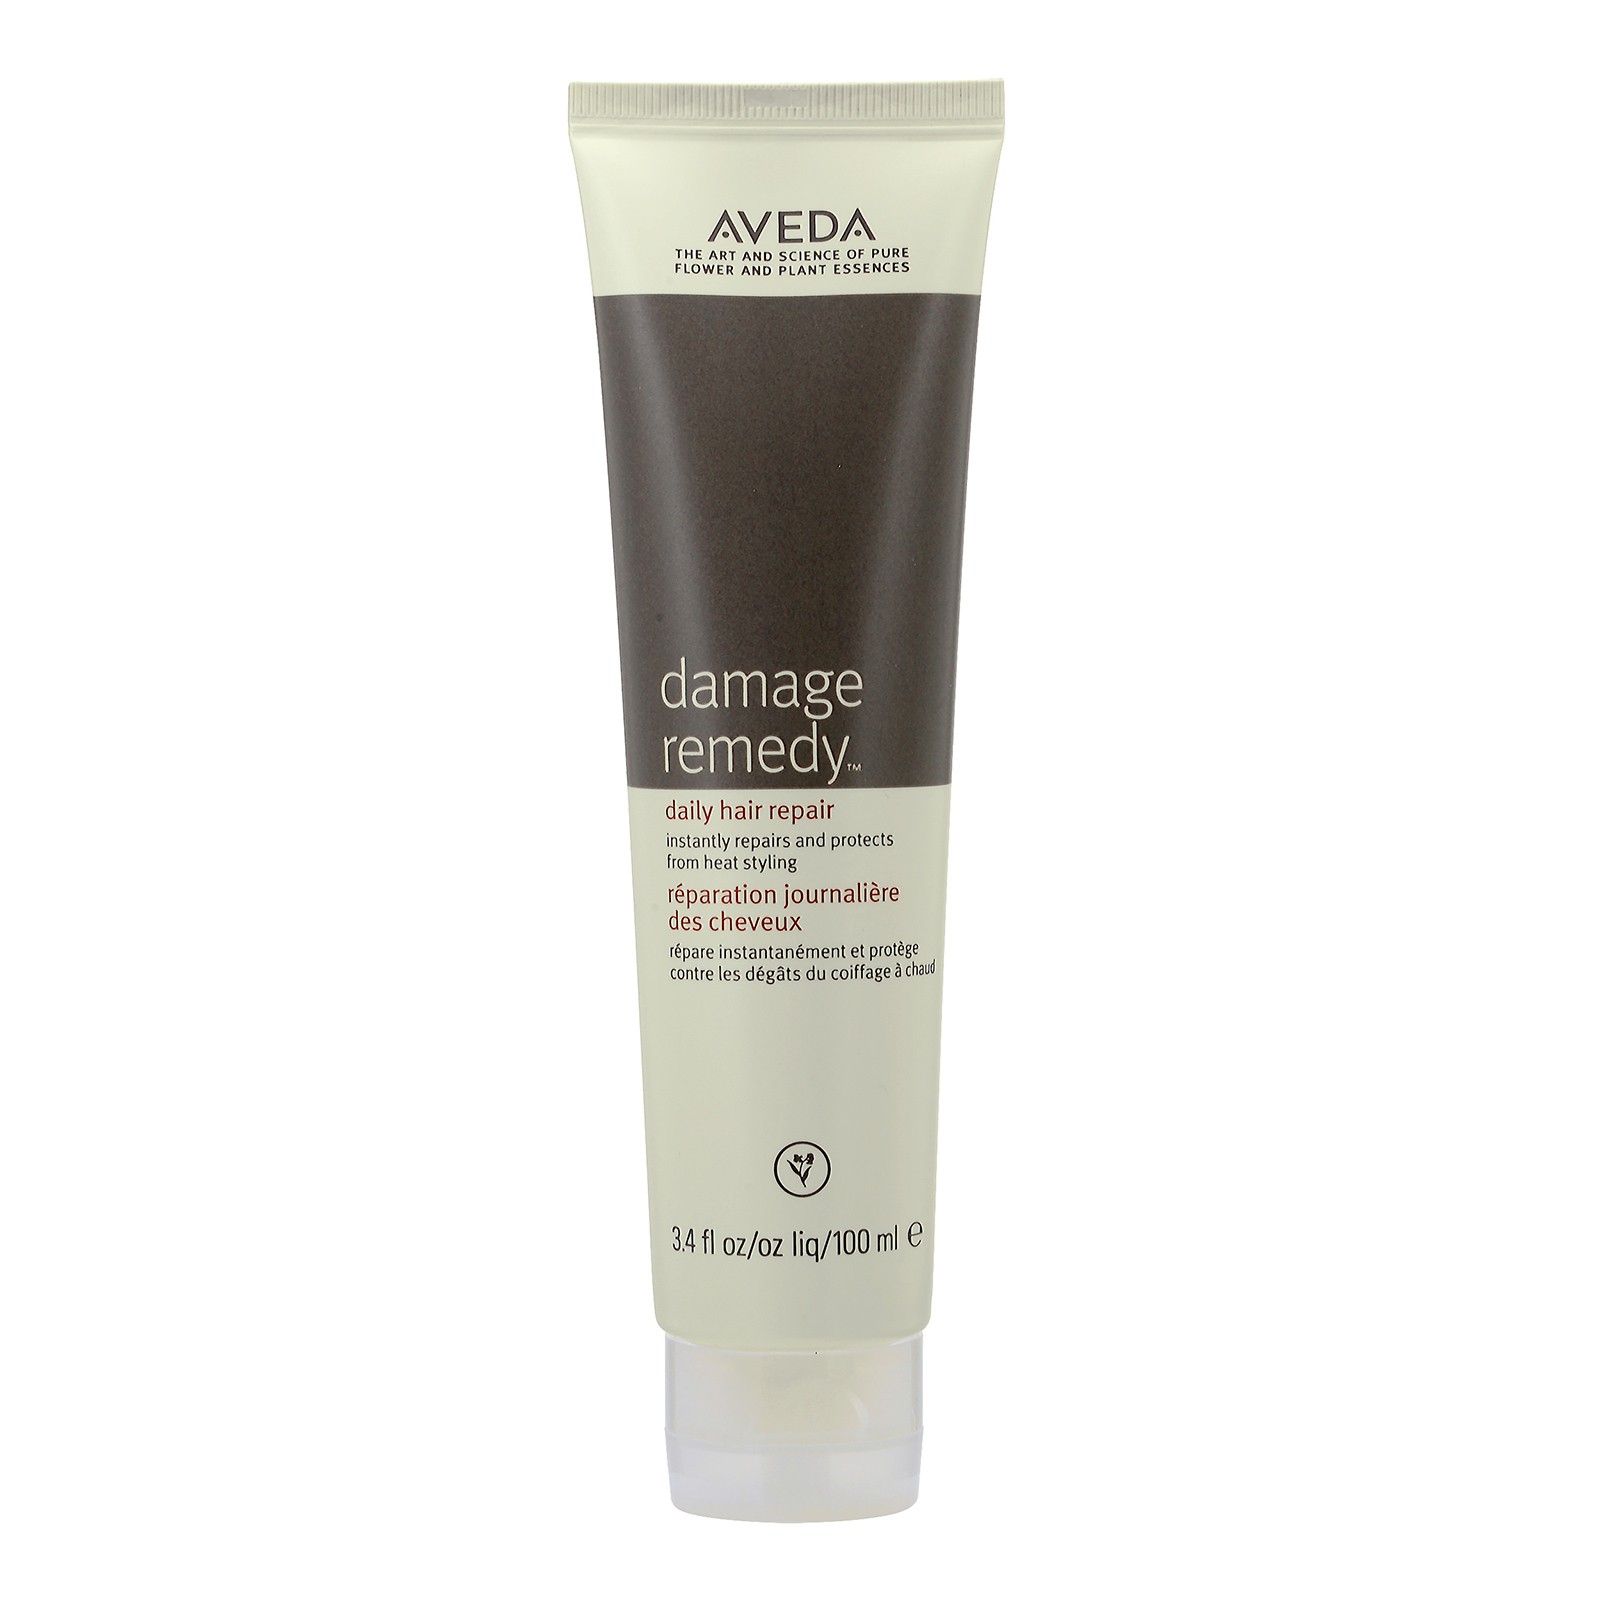 Aveda Damage Remedy™ Daily Hair Repair 3.4oz, 100ml